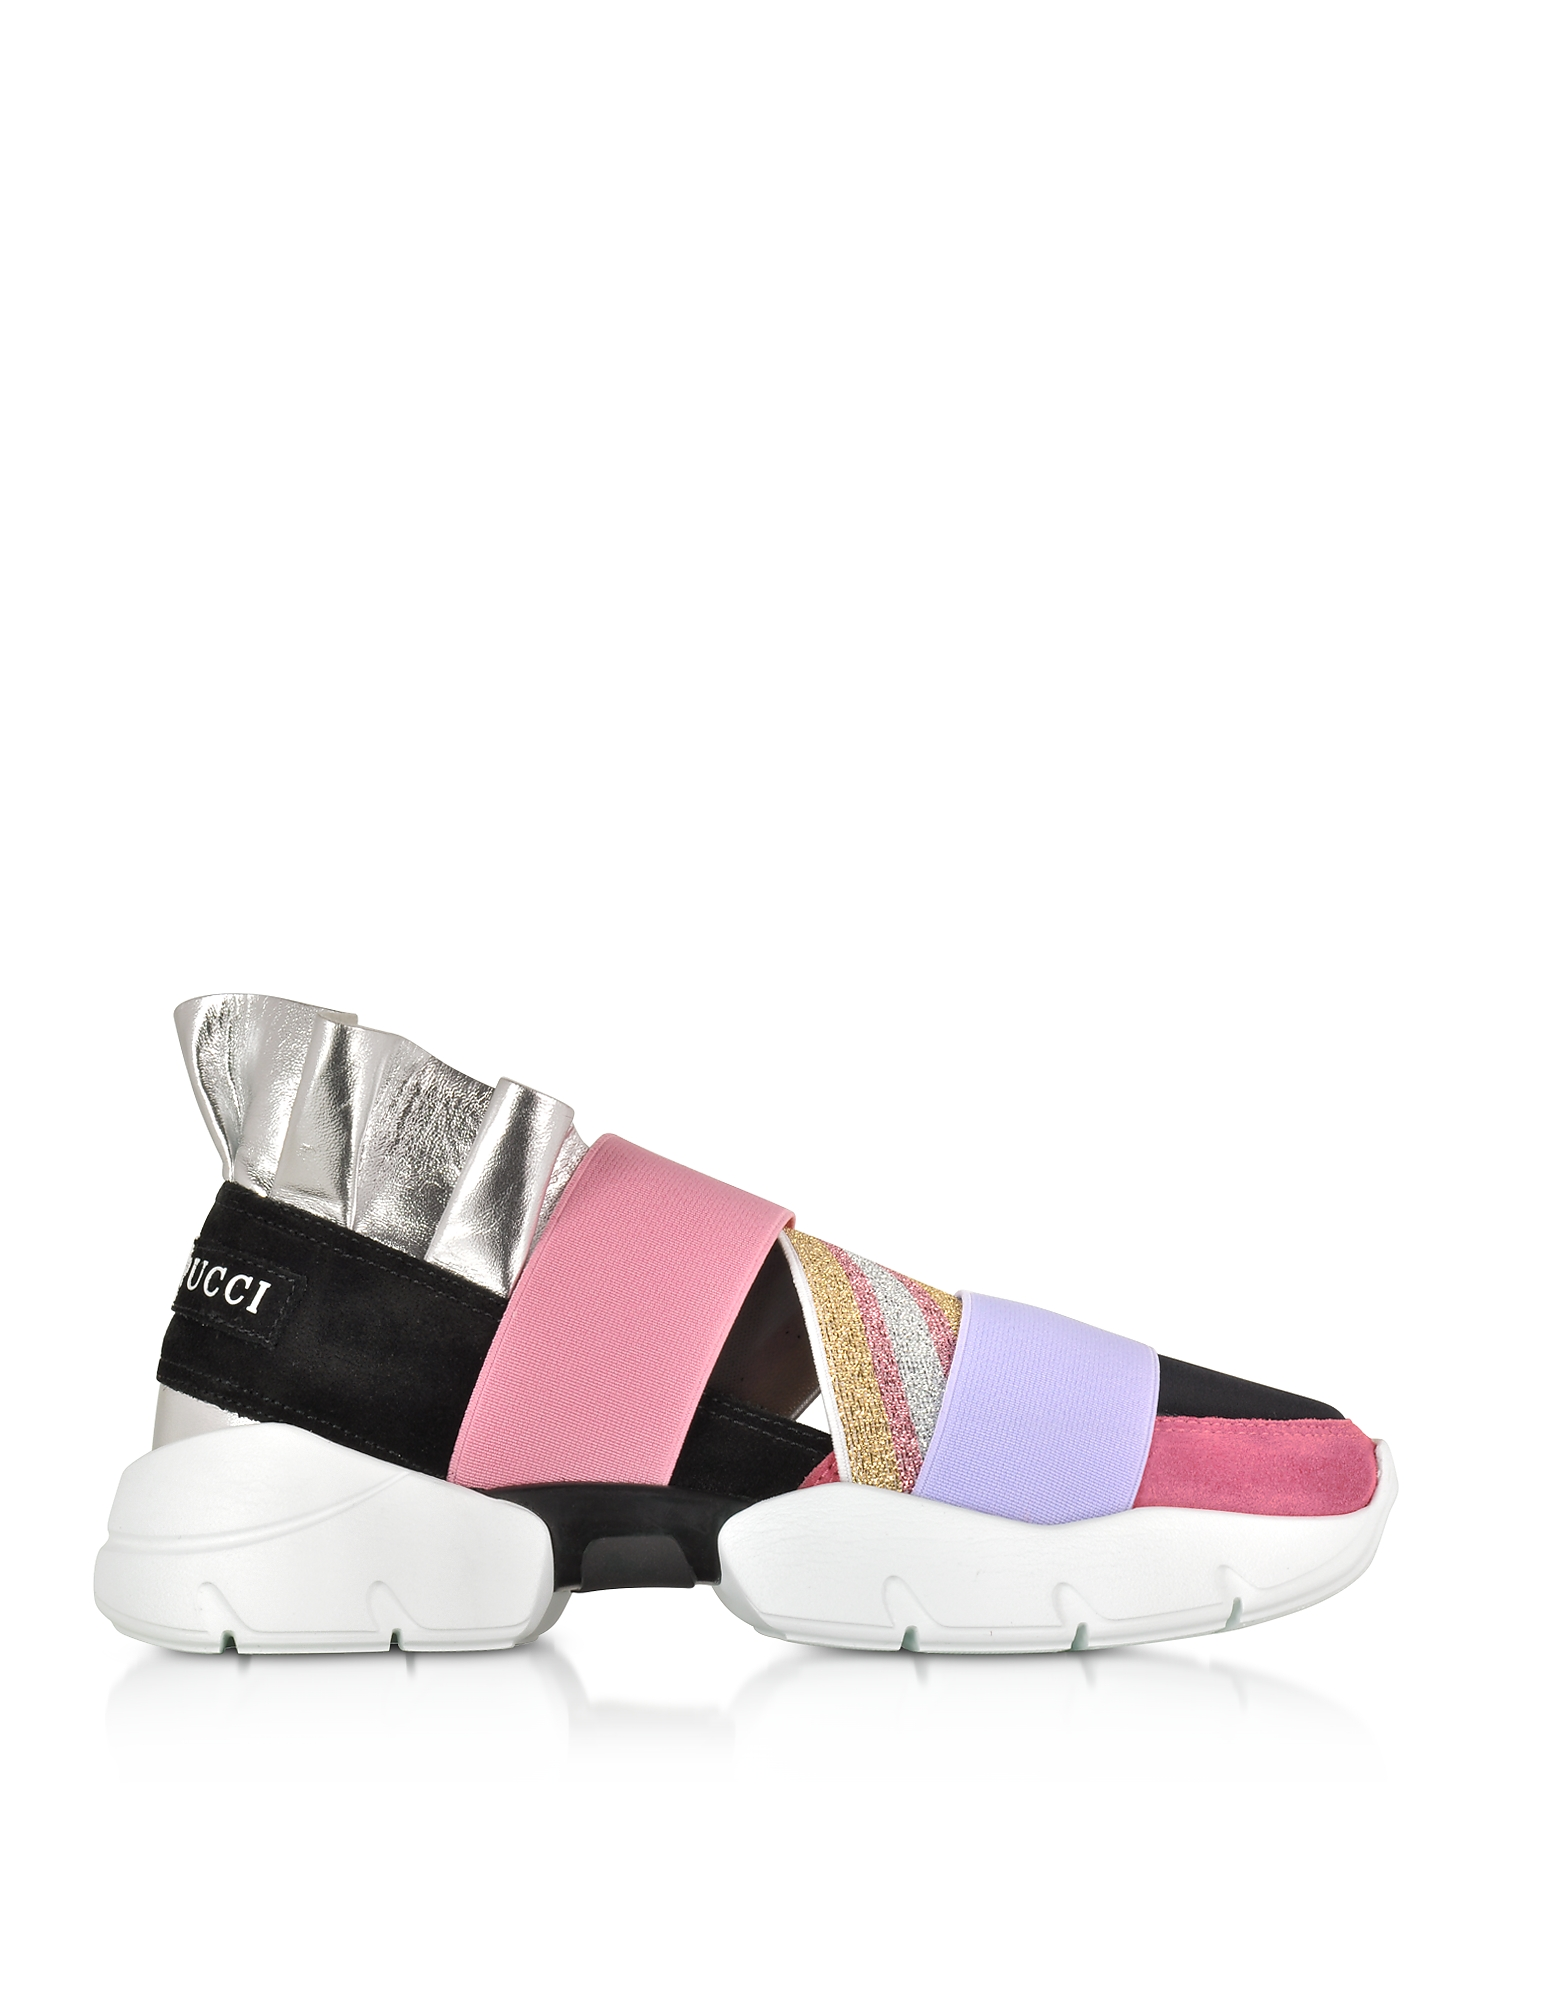 Emilio Pucci Shoes, Black and Lava Suede and Silver Metallic Leather Ruffle Sneakers